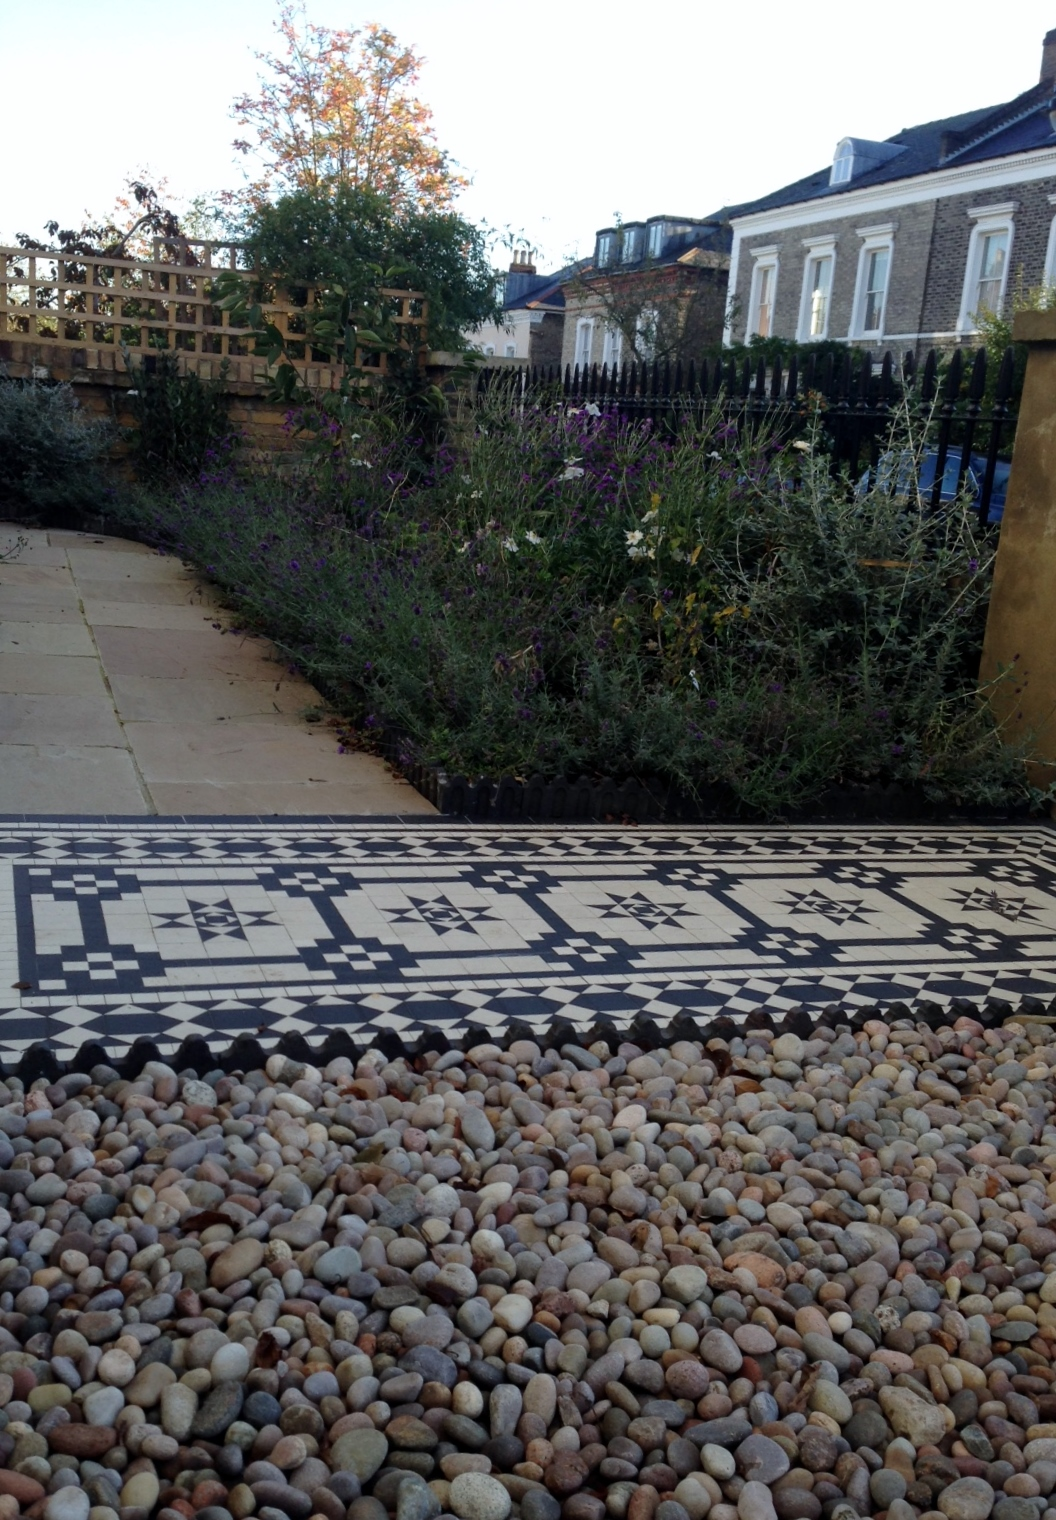 Islington Victorian mosaic tile path York stone sandstone paving wrought iron rails and gate London (19)